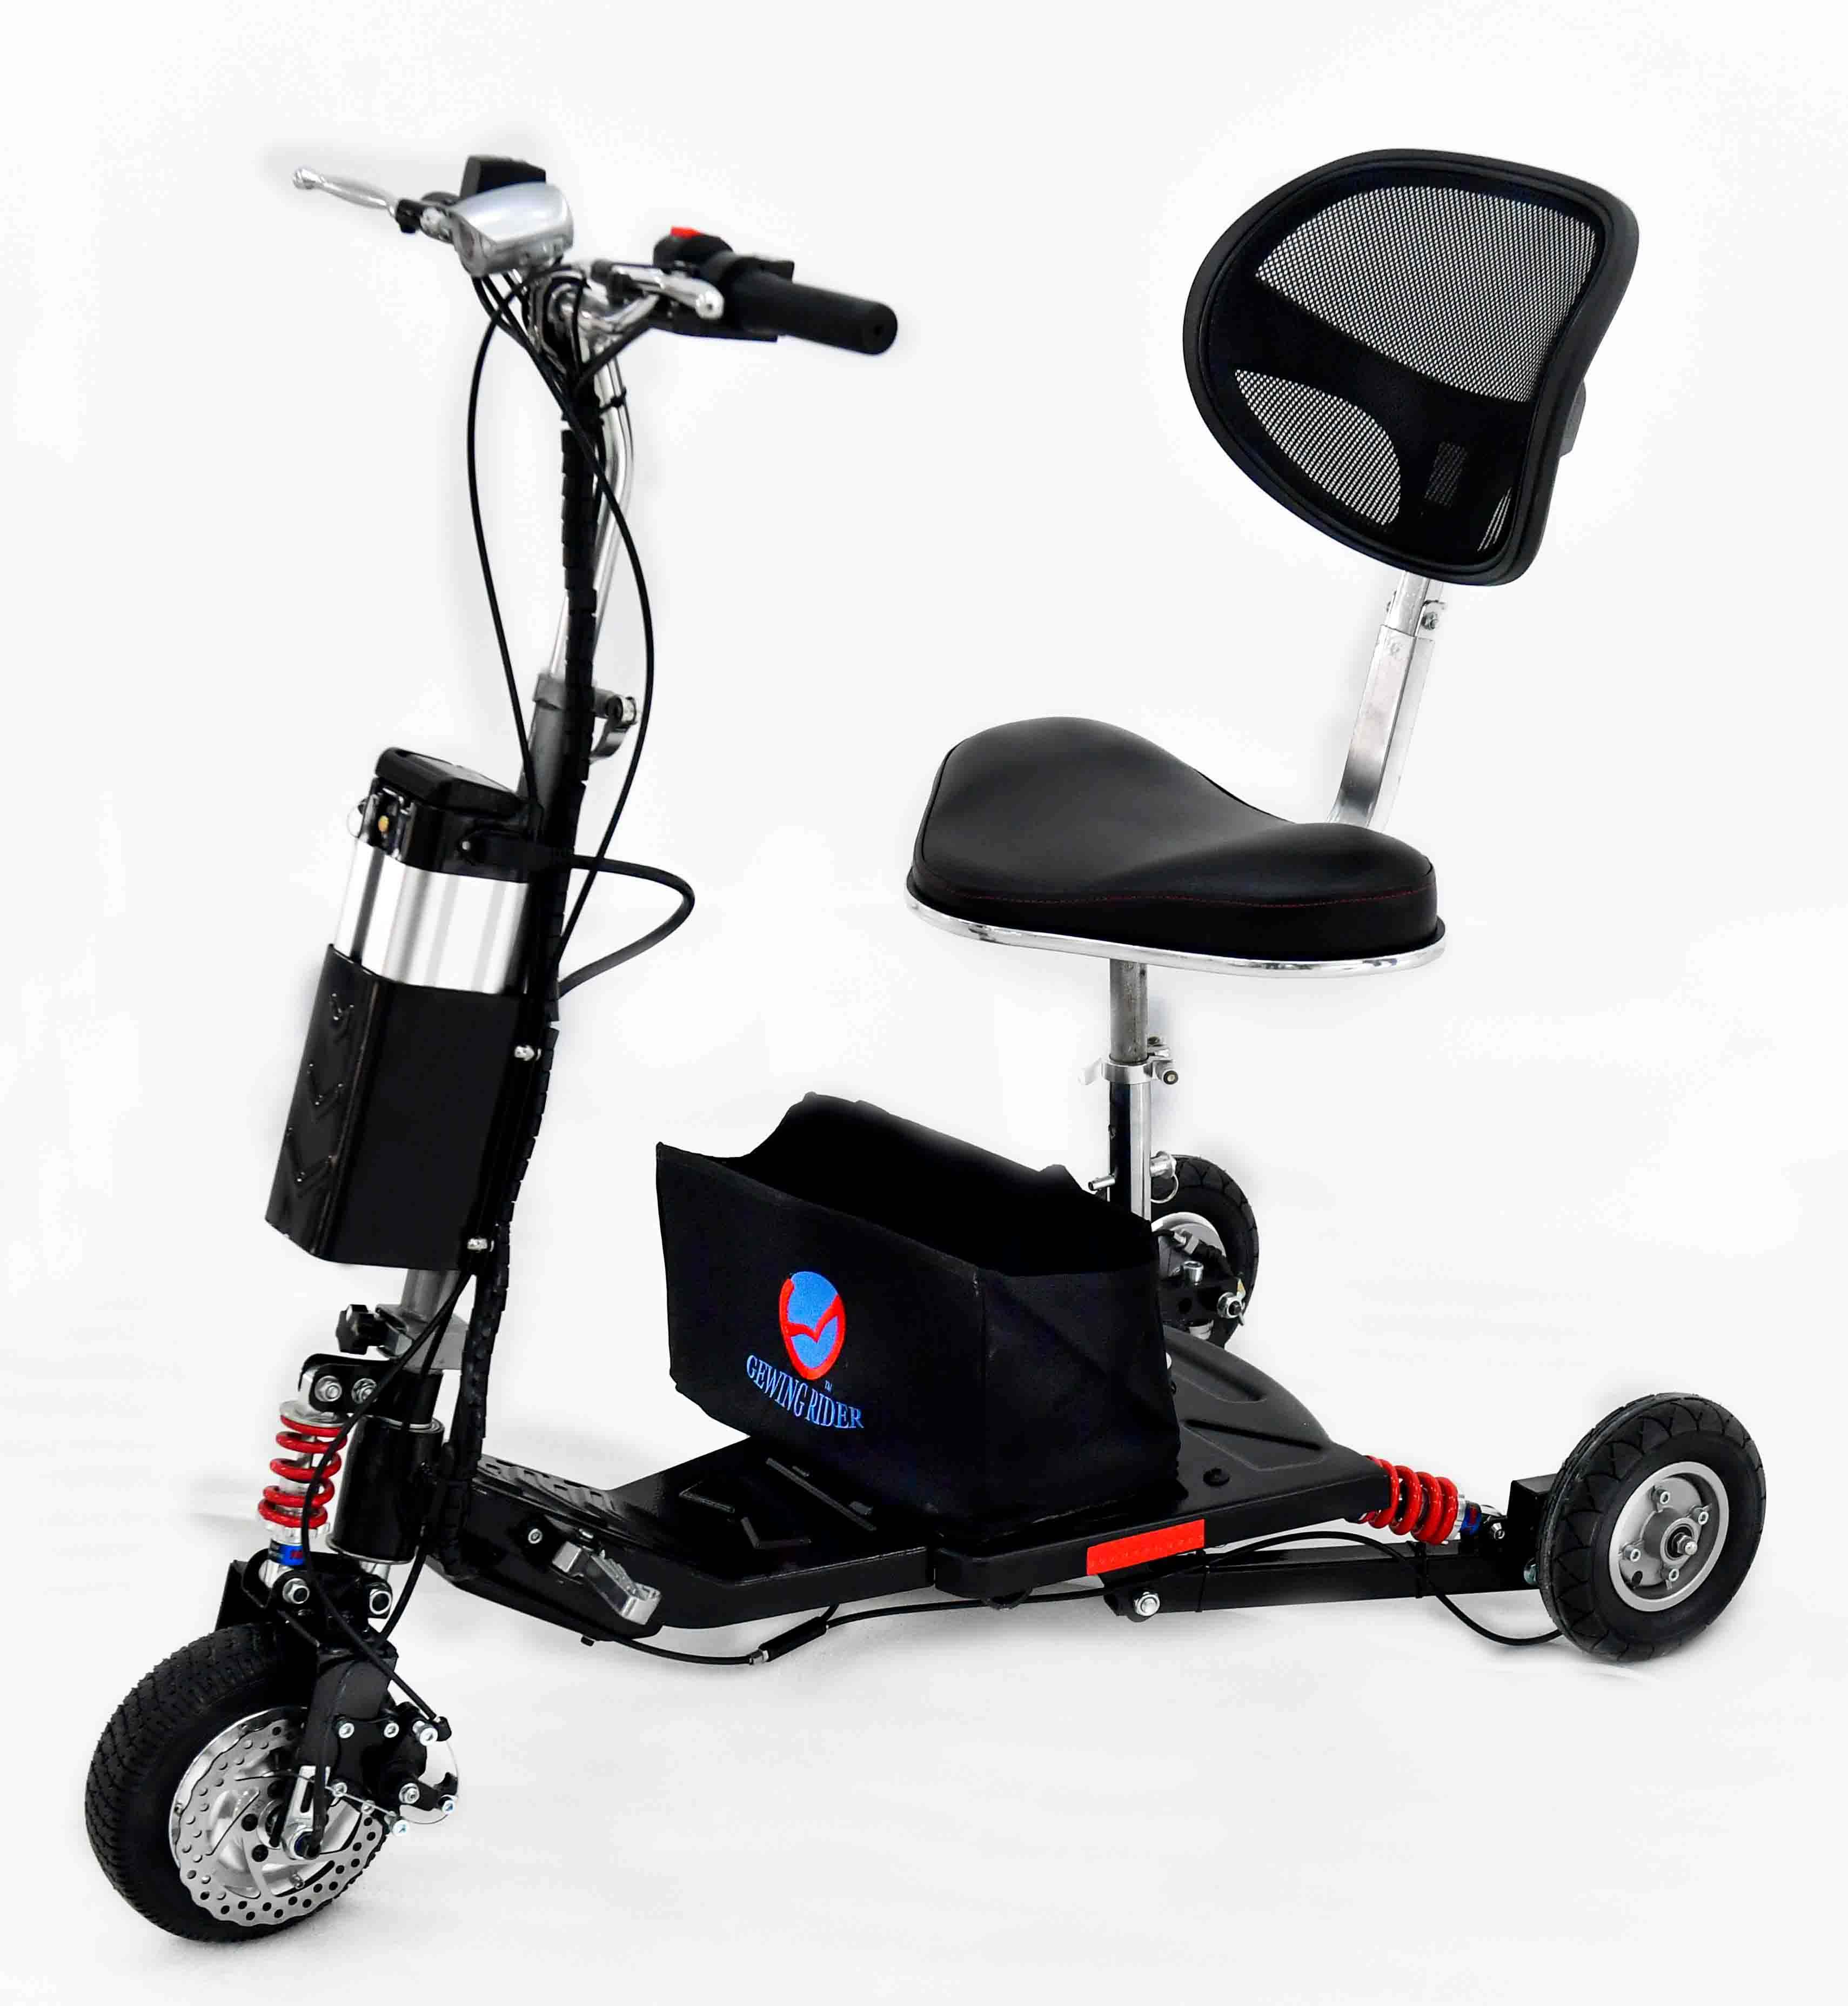 Lithium Electric Scooter with CE approved 3 Wheel handicapped Scooter